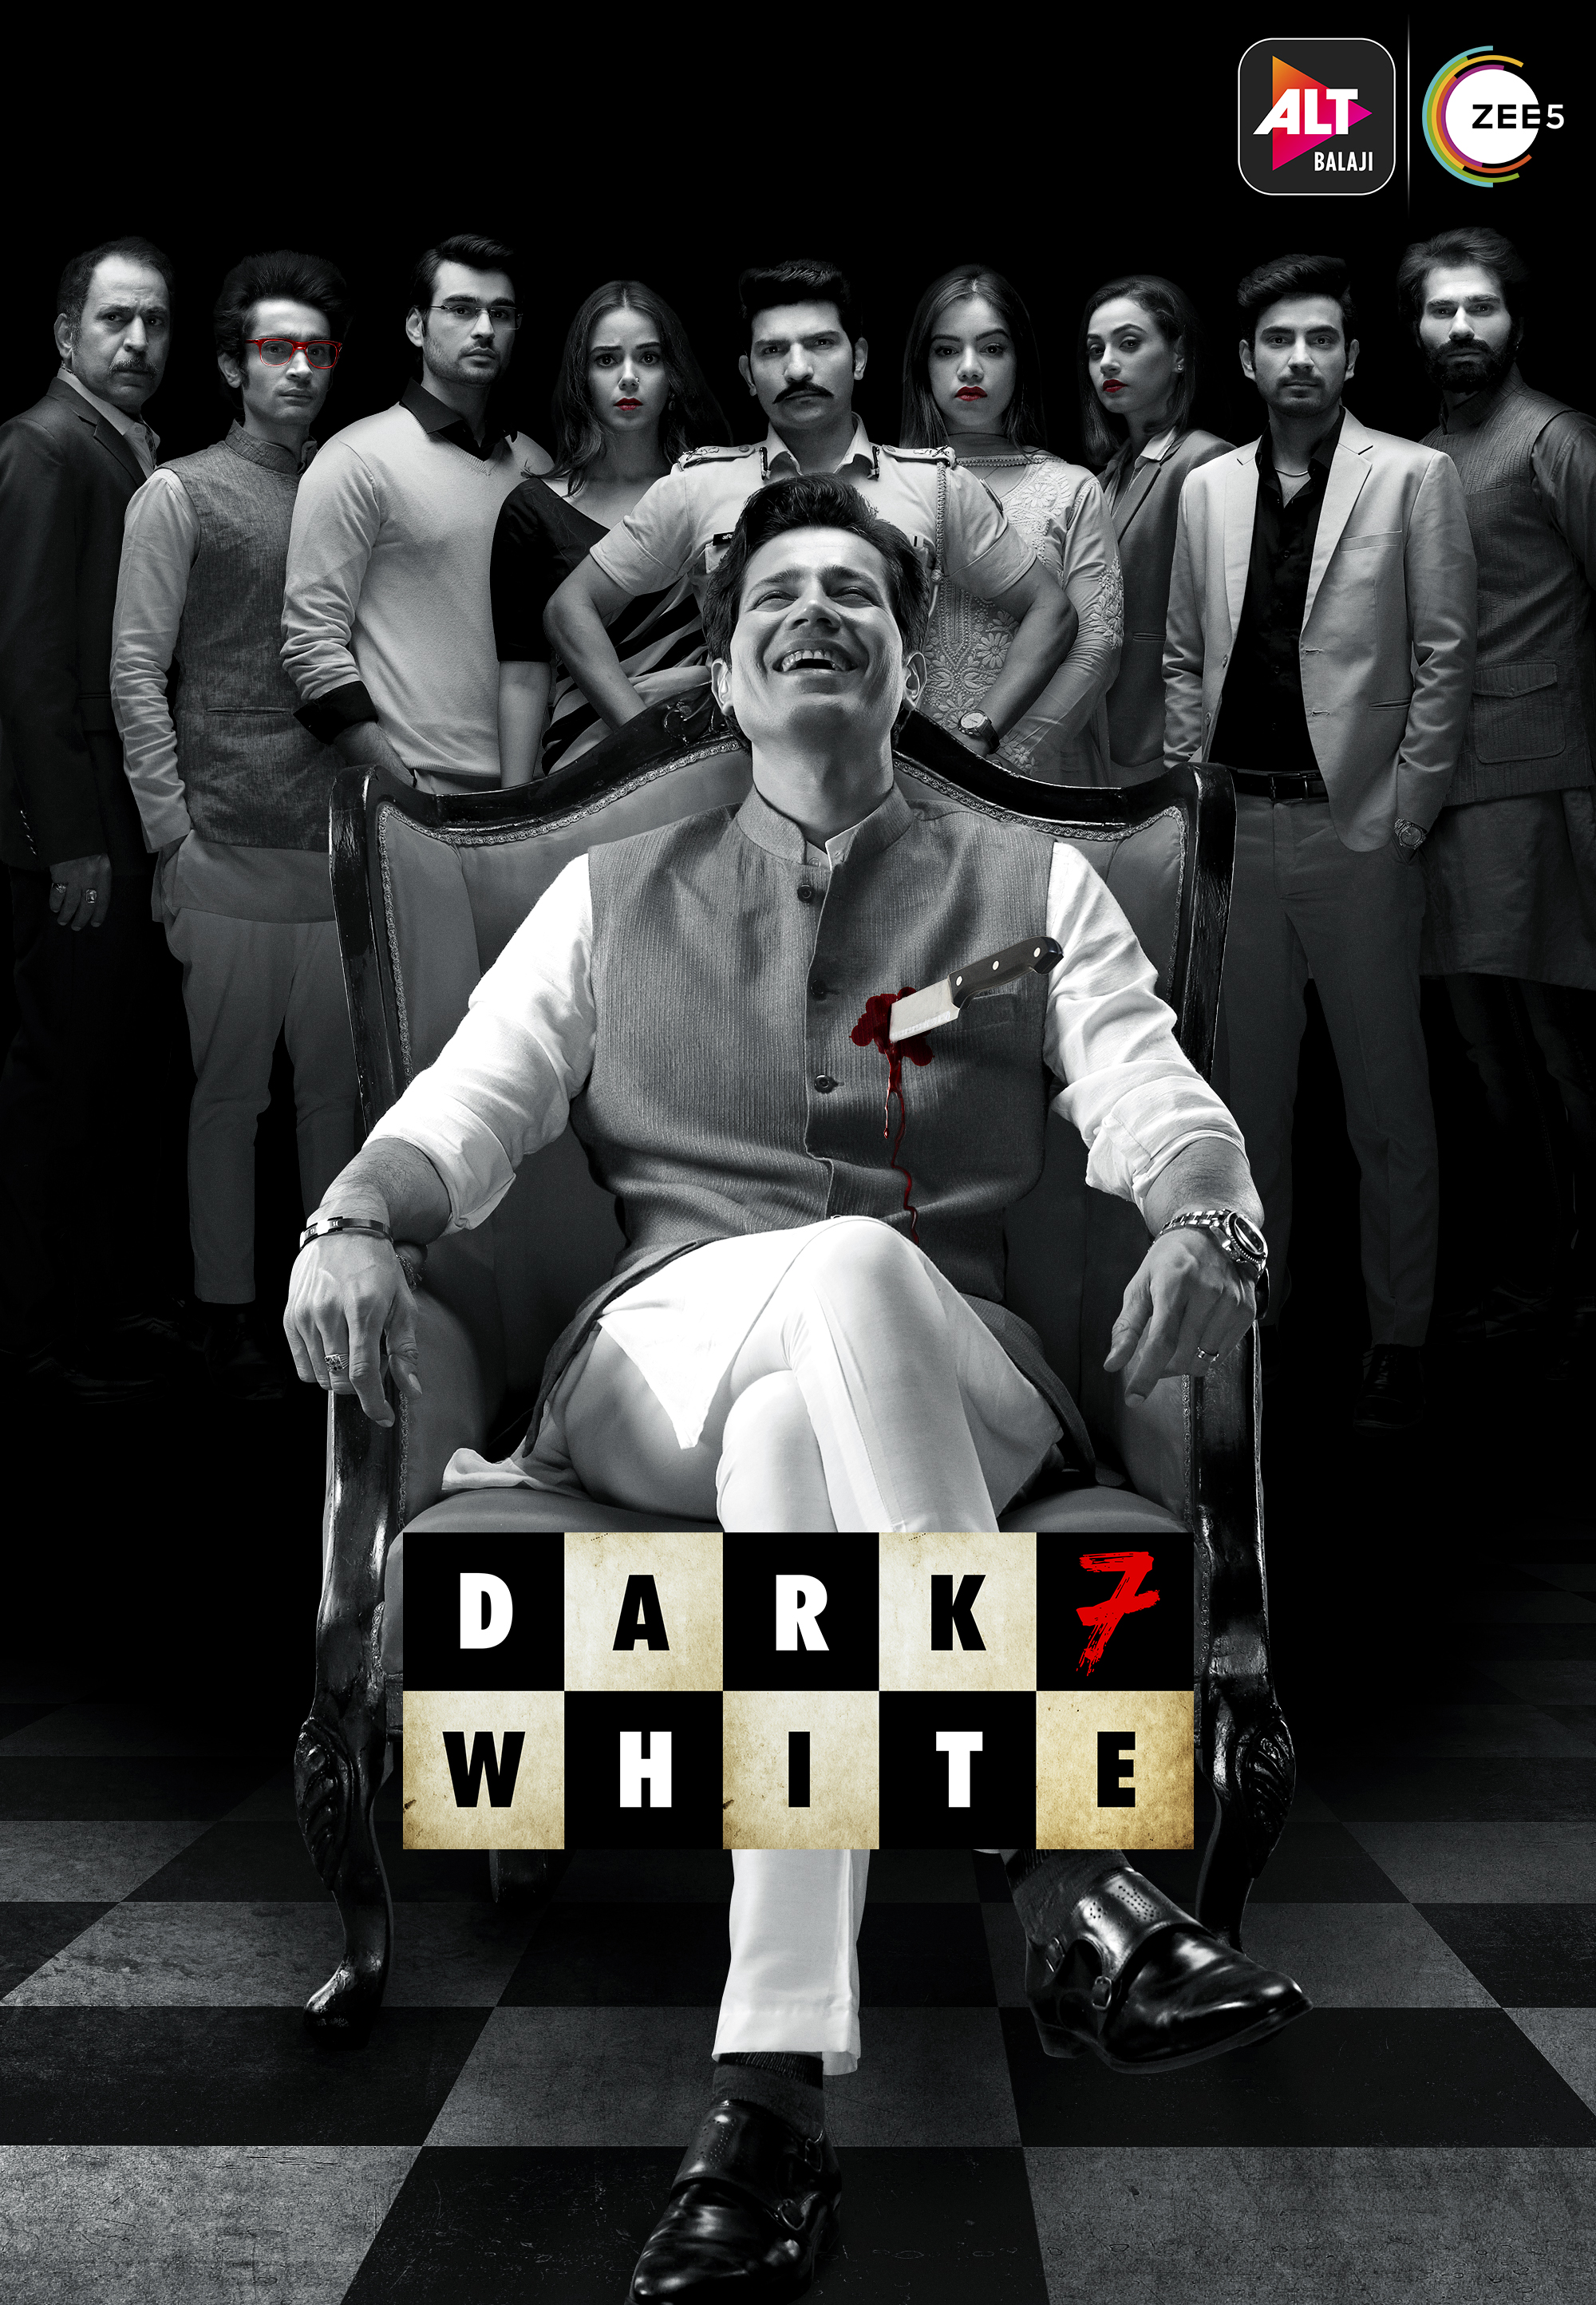 Dark 7 White 2020 S01 Hindi Complete ALTBalaji Original Web Series 720p HDRip 1.4GB Download